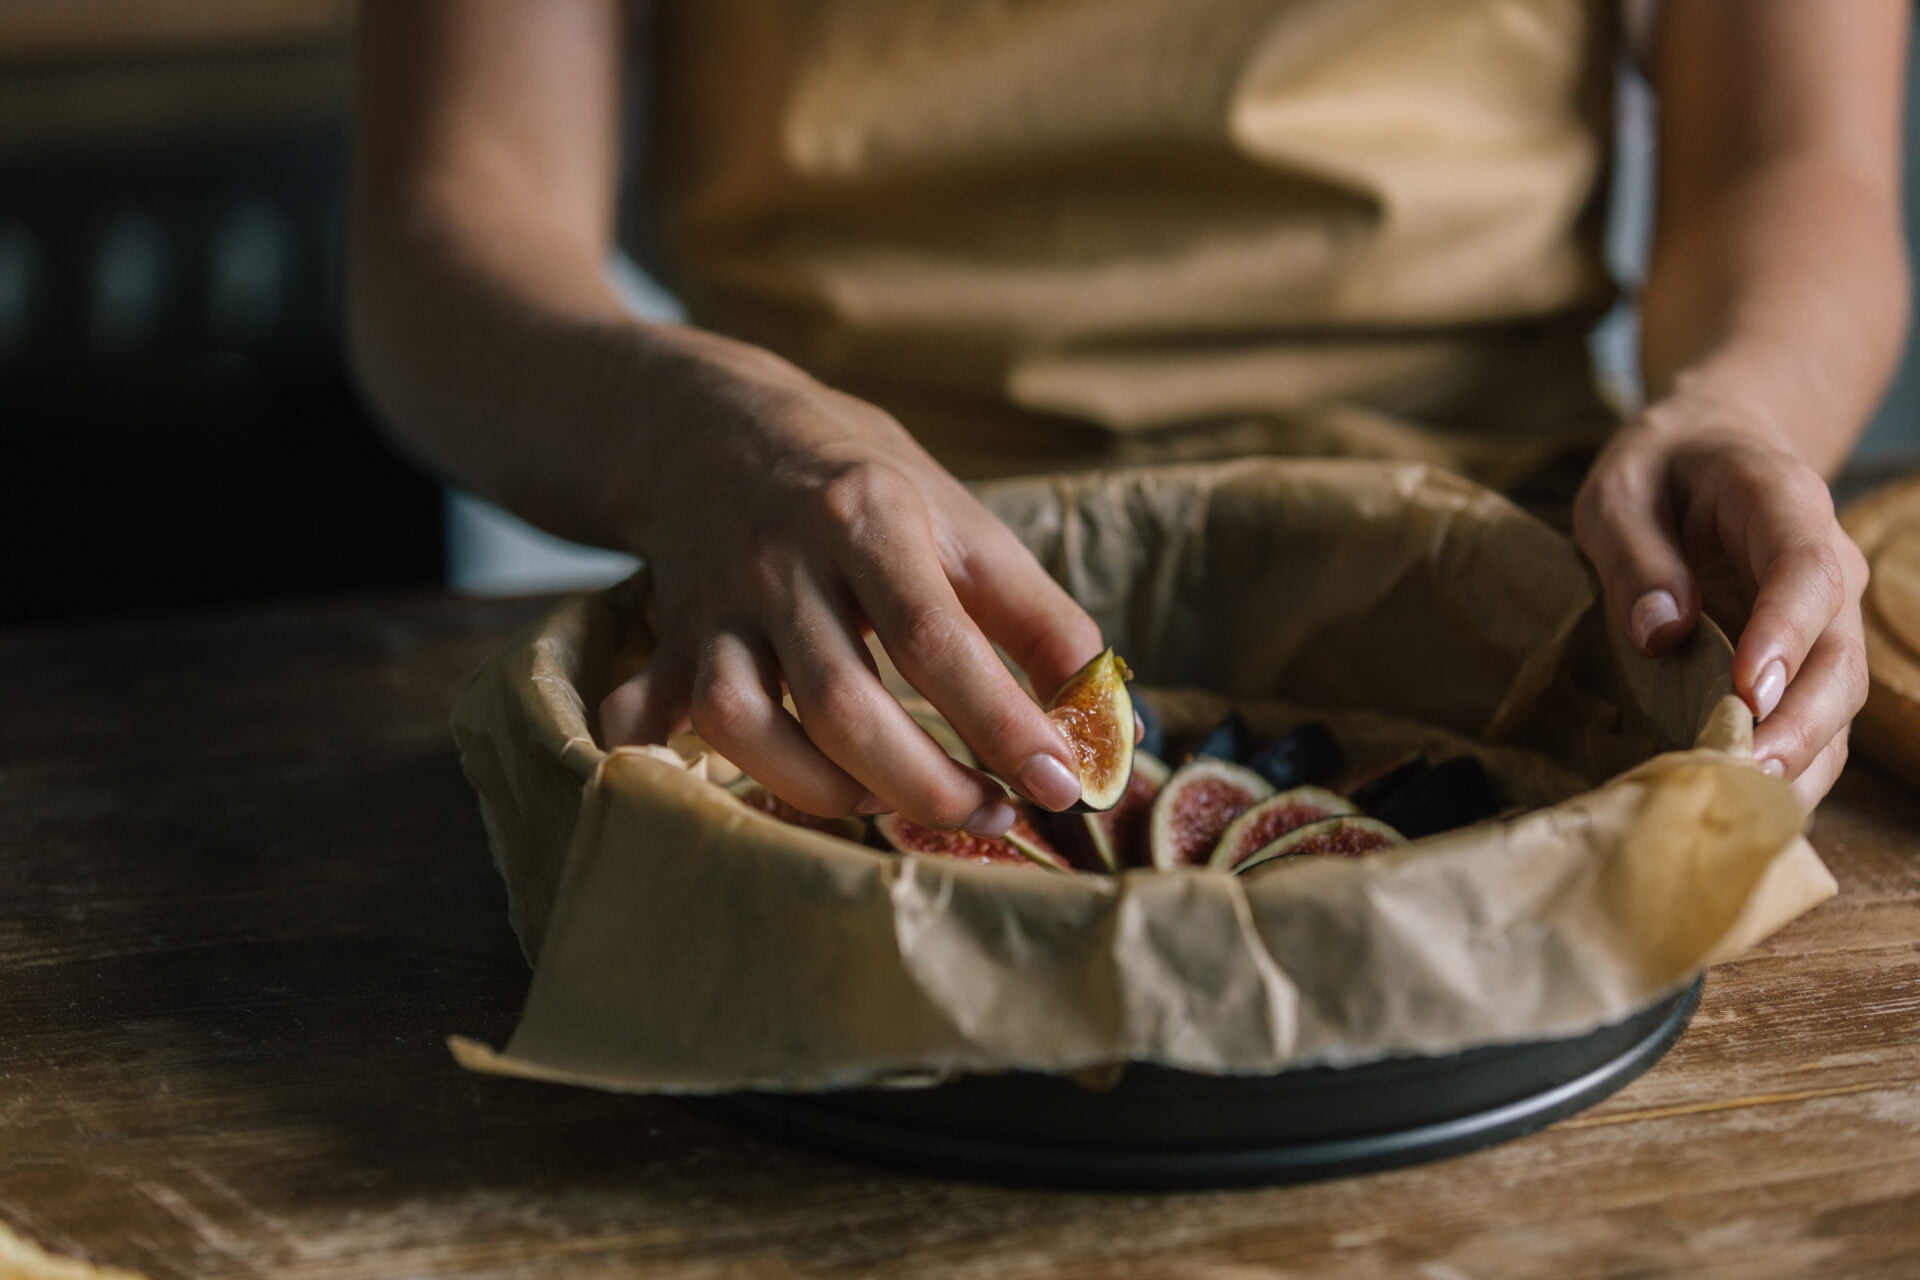 woman puts figs inside pie with parchment paper